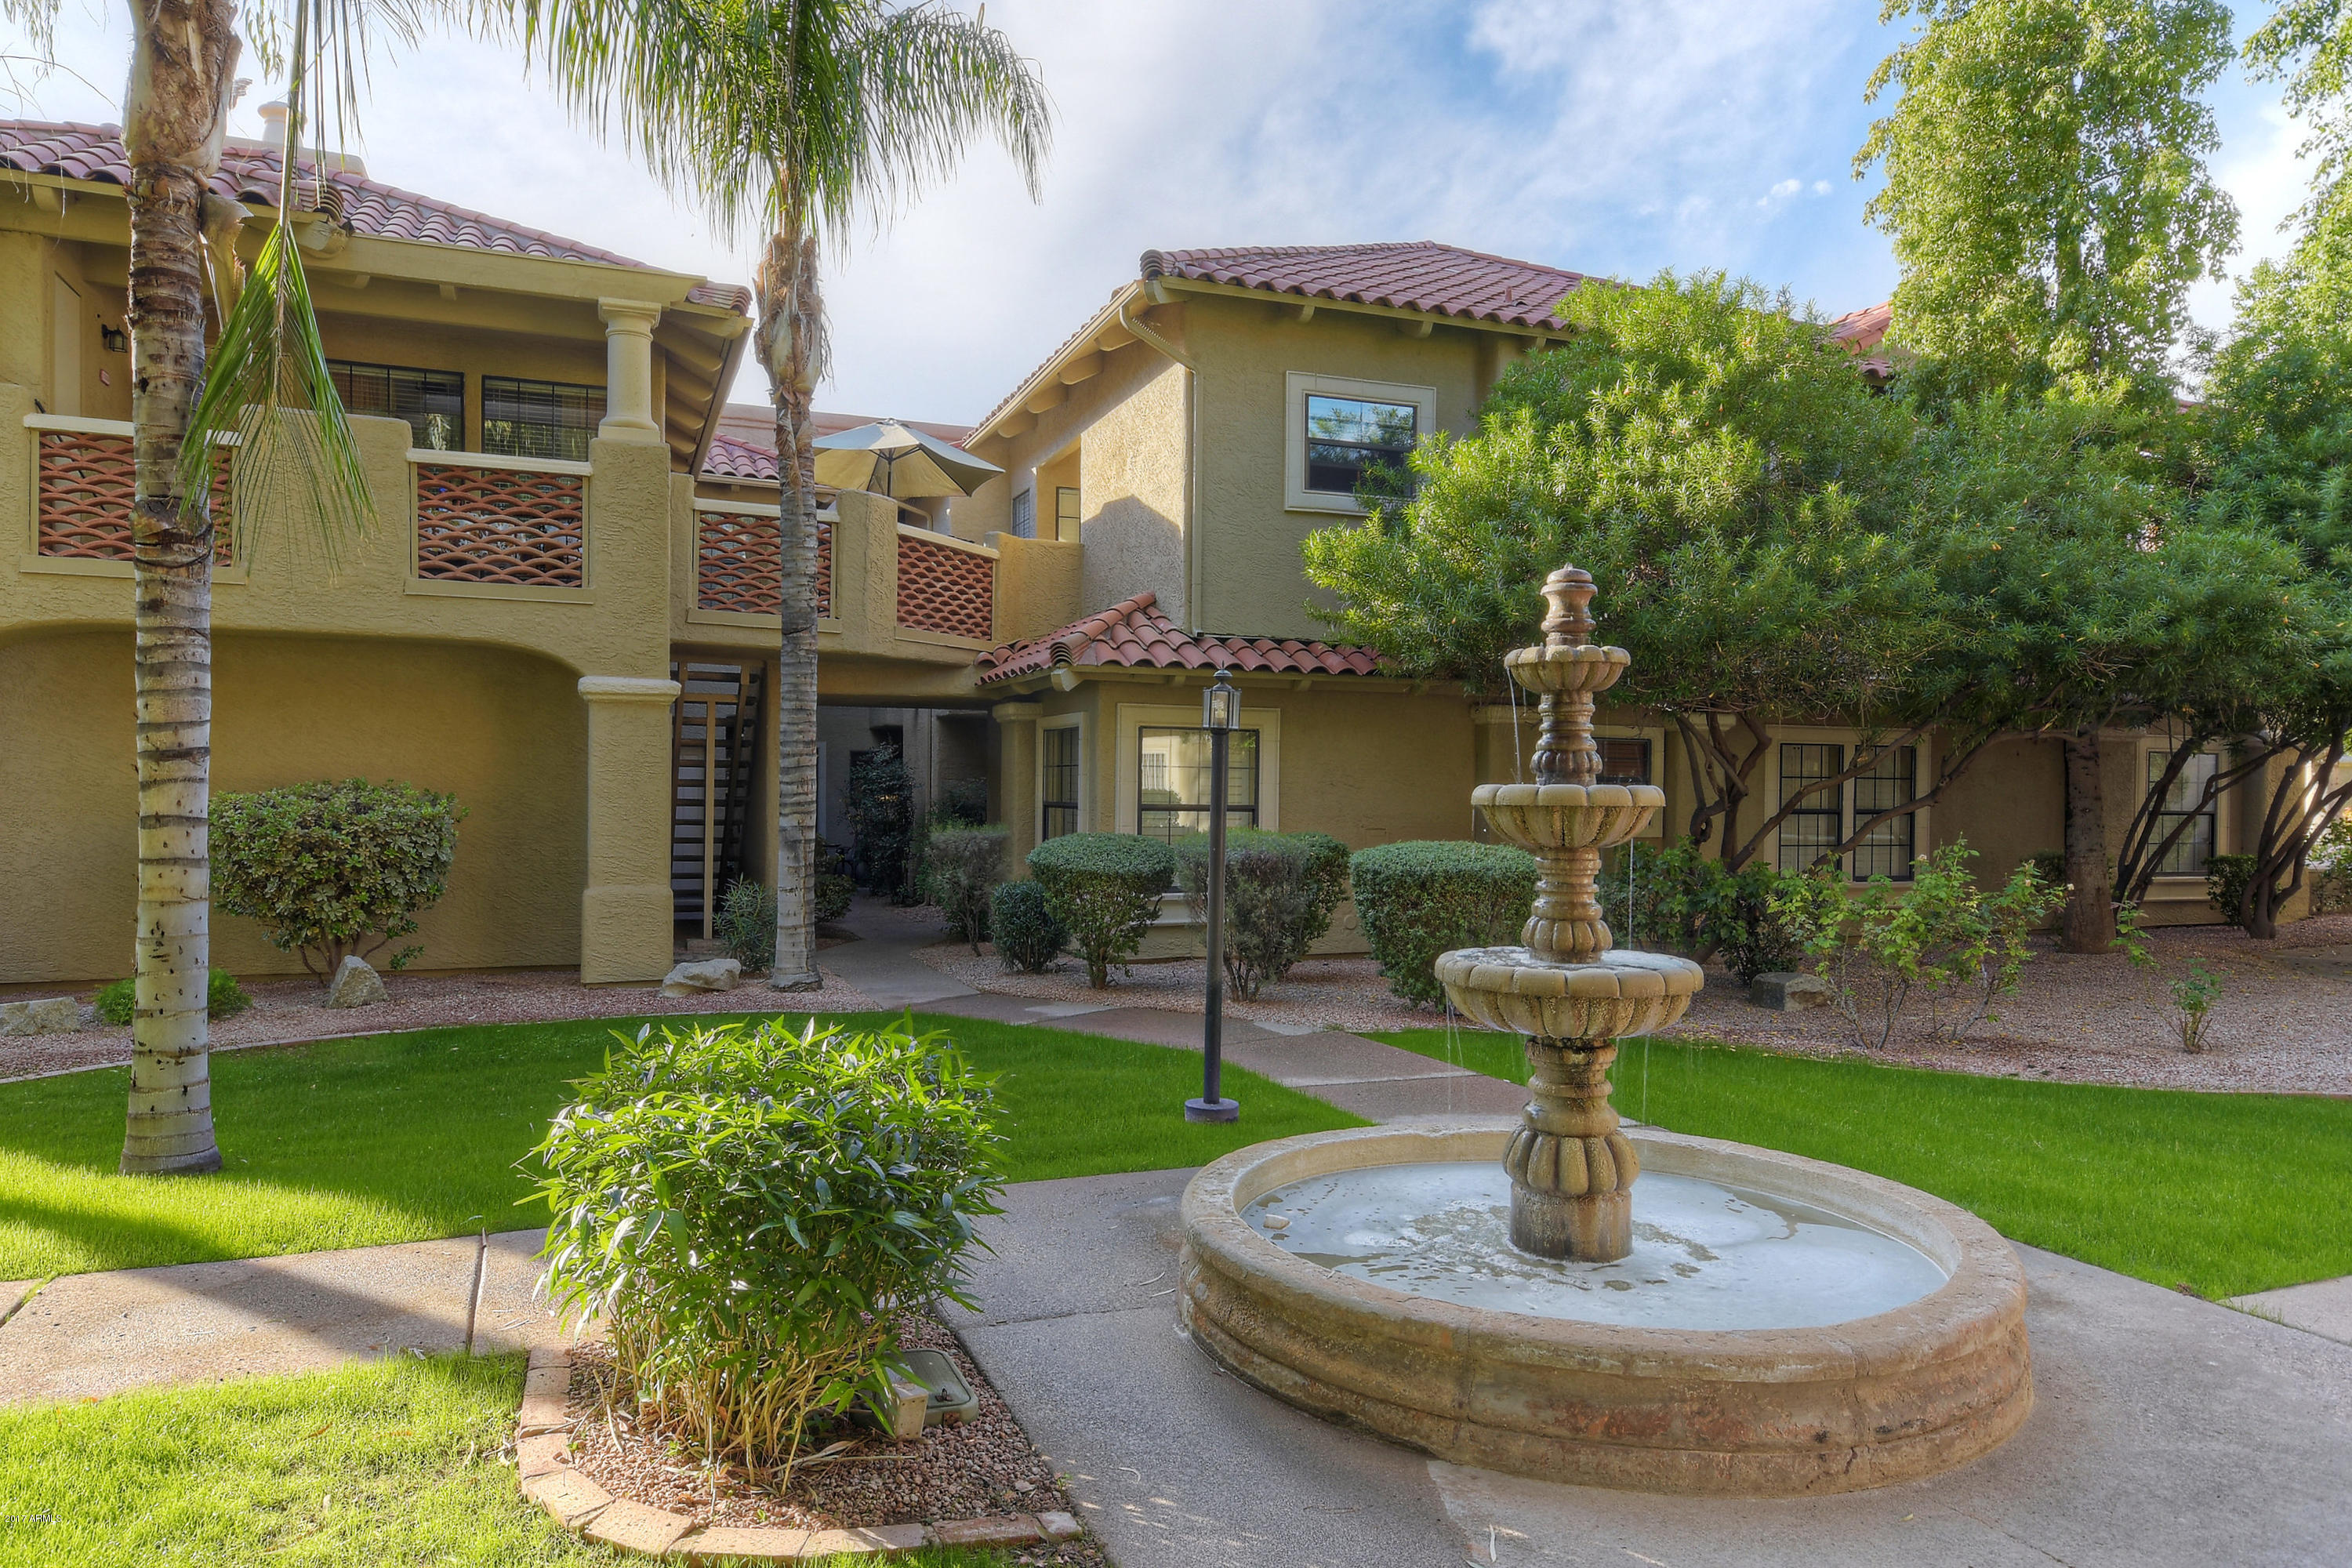 8300 E Via De Ventura Street, Unit 1006, Scottsdale AZ 85258 - Photo 1